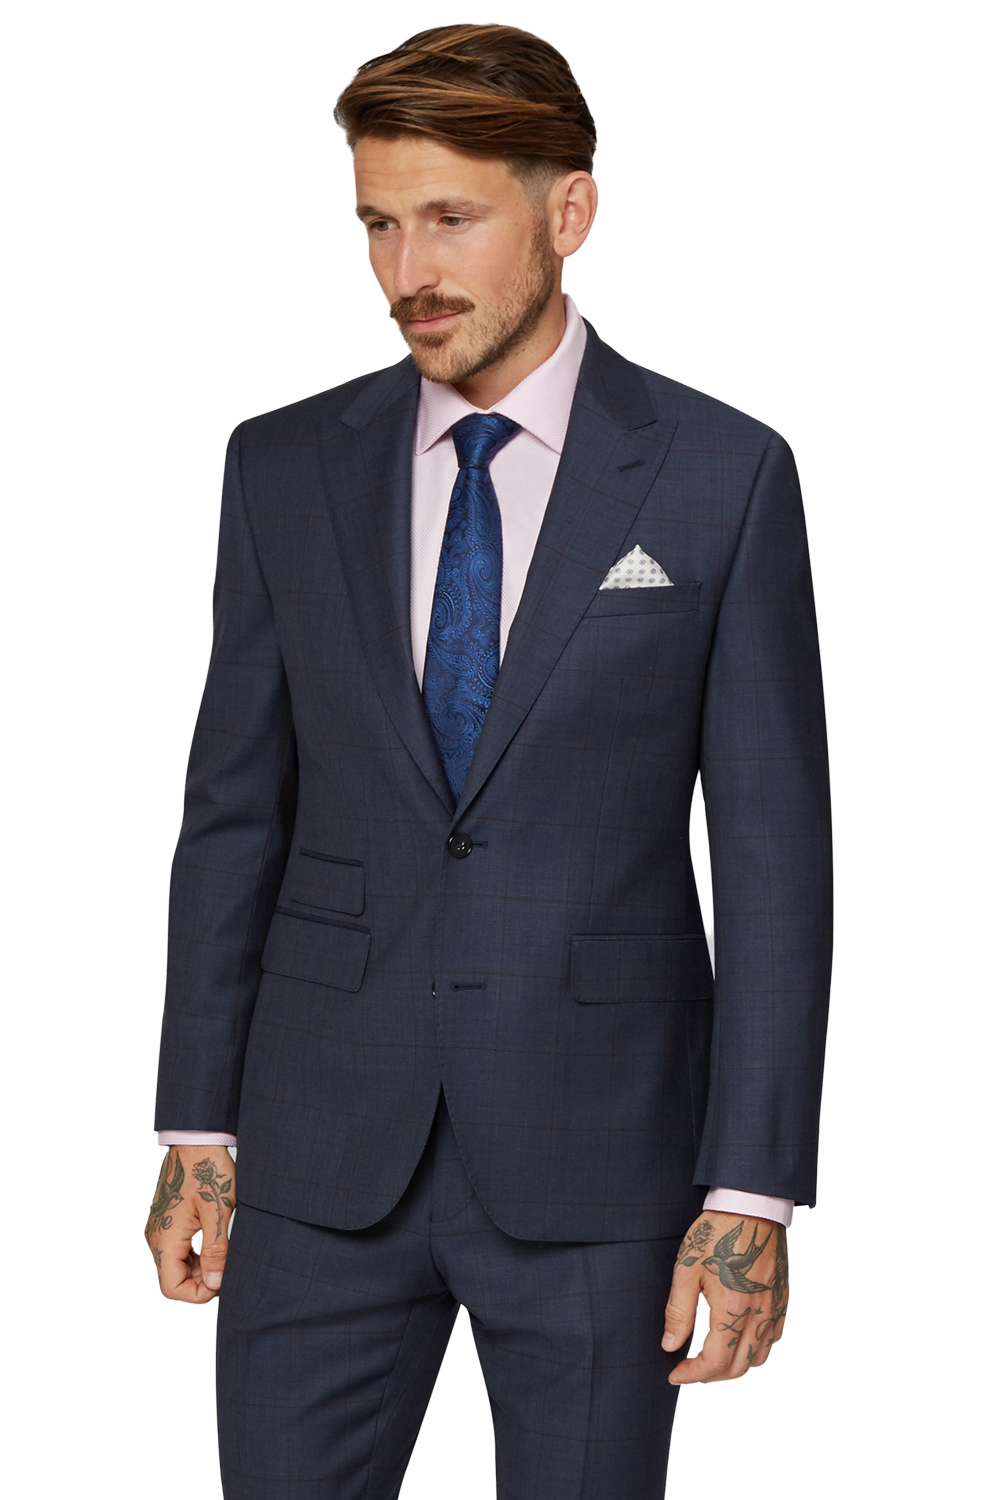 Moss Bros Mens Indigo Blue Suit Jacket 2 Button Check Tailored Fit ...